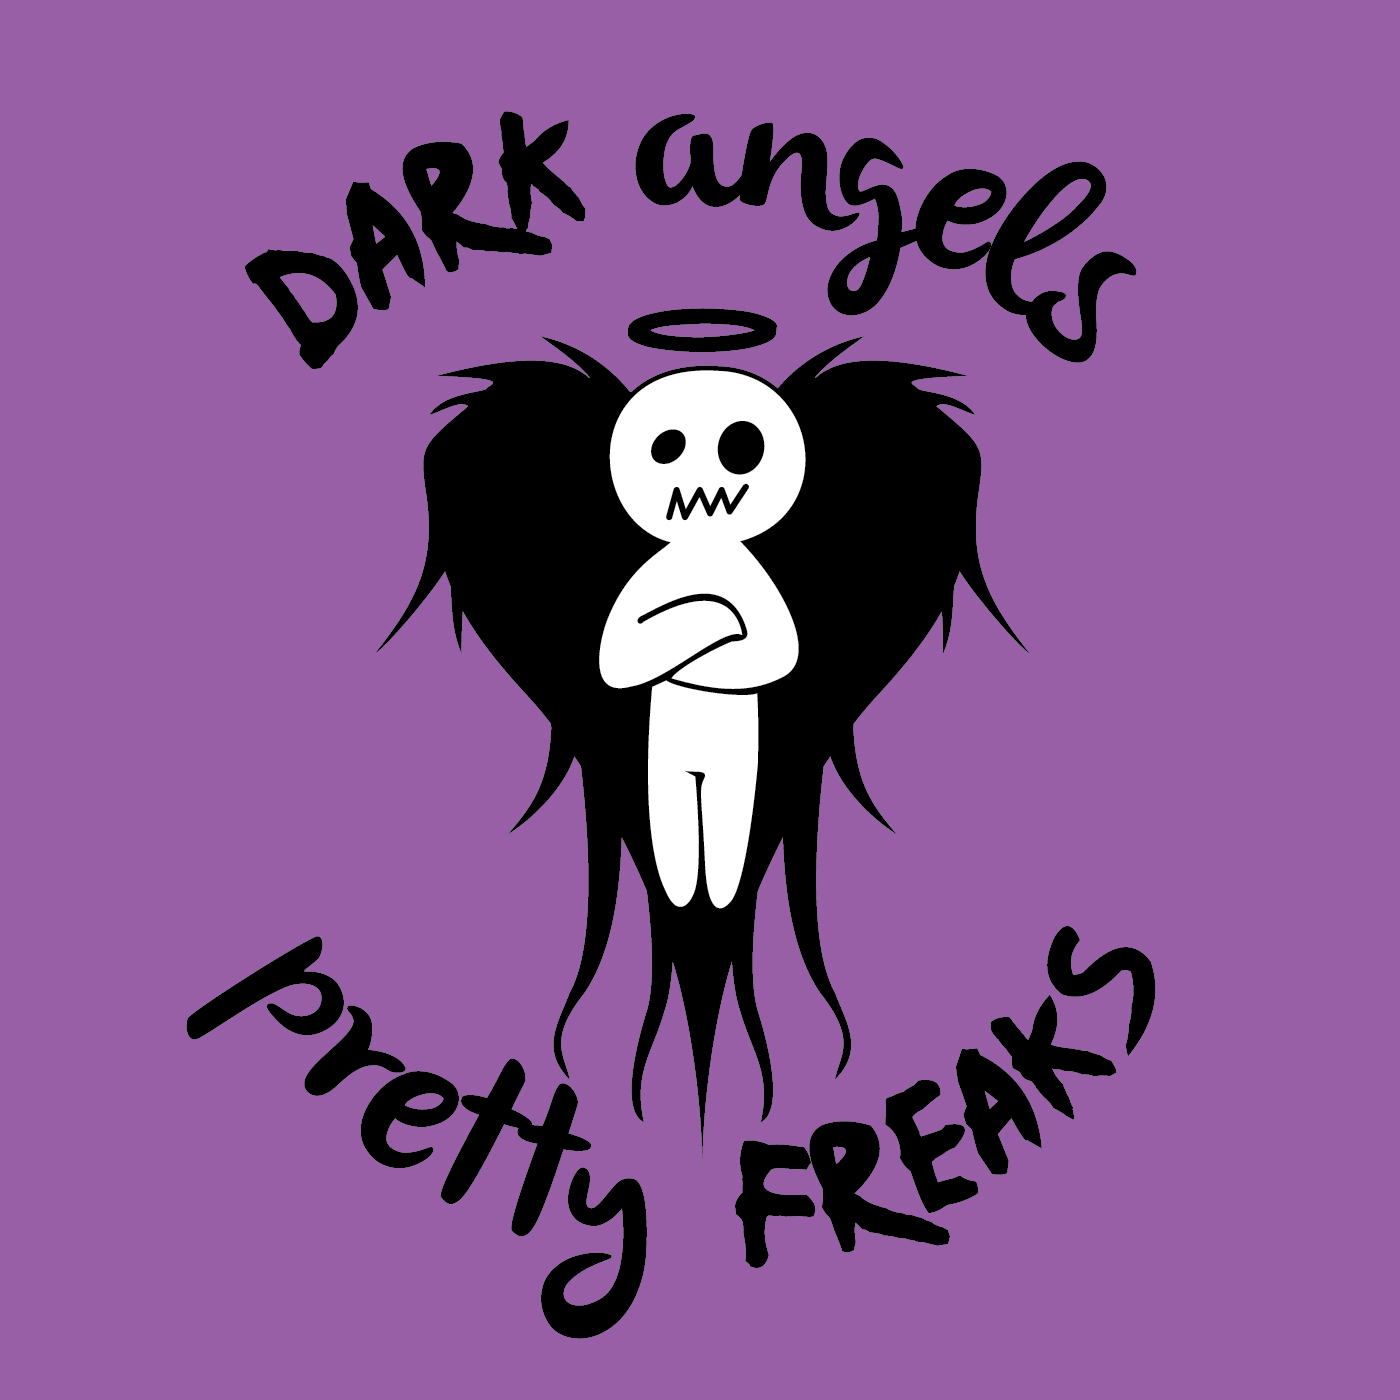 Artwork for DAPF #74 Dark Angels & Pretty freaks #74. We are back to catch up on Neil's crazy time at Outside Lands Music festival, We talk Hipsters, Fanny packs, Acid washed Jeans, Long Hair, Roger and Neil come up with odd band names, Butt chugging with an Ovipos